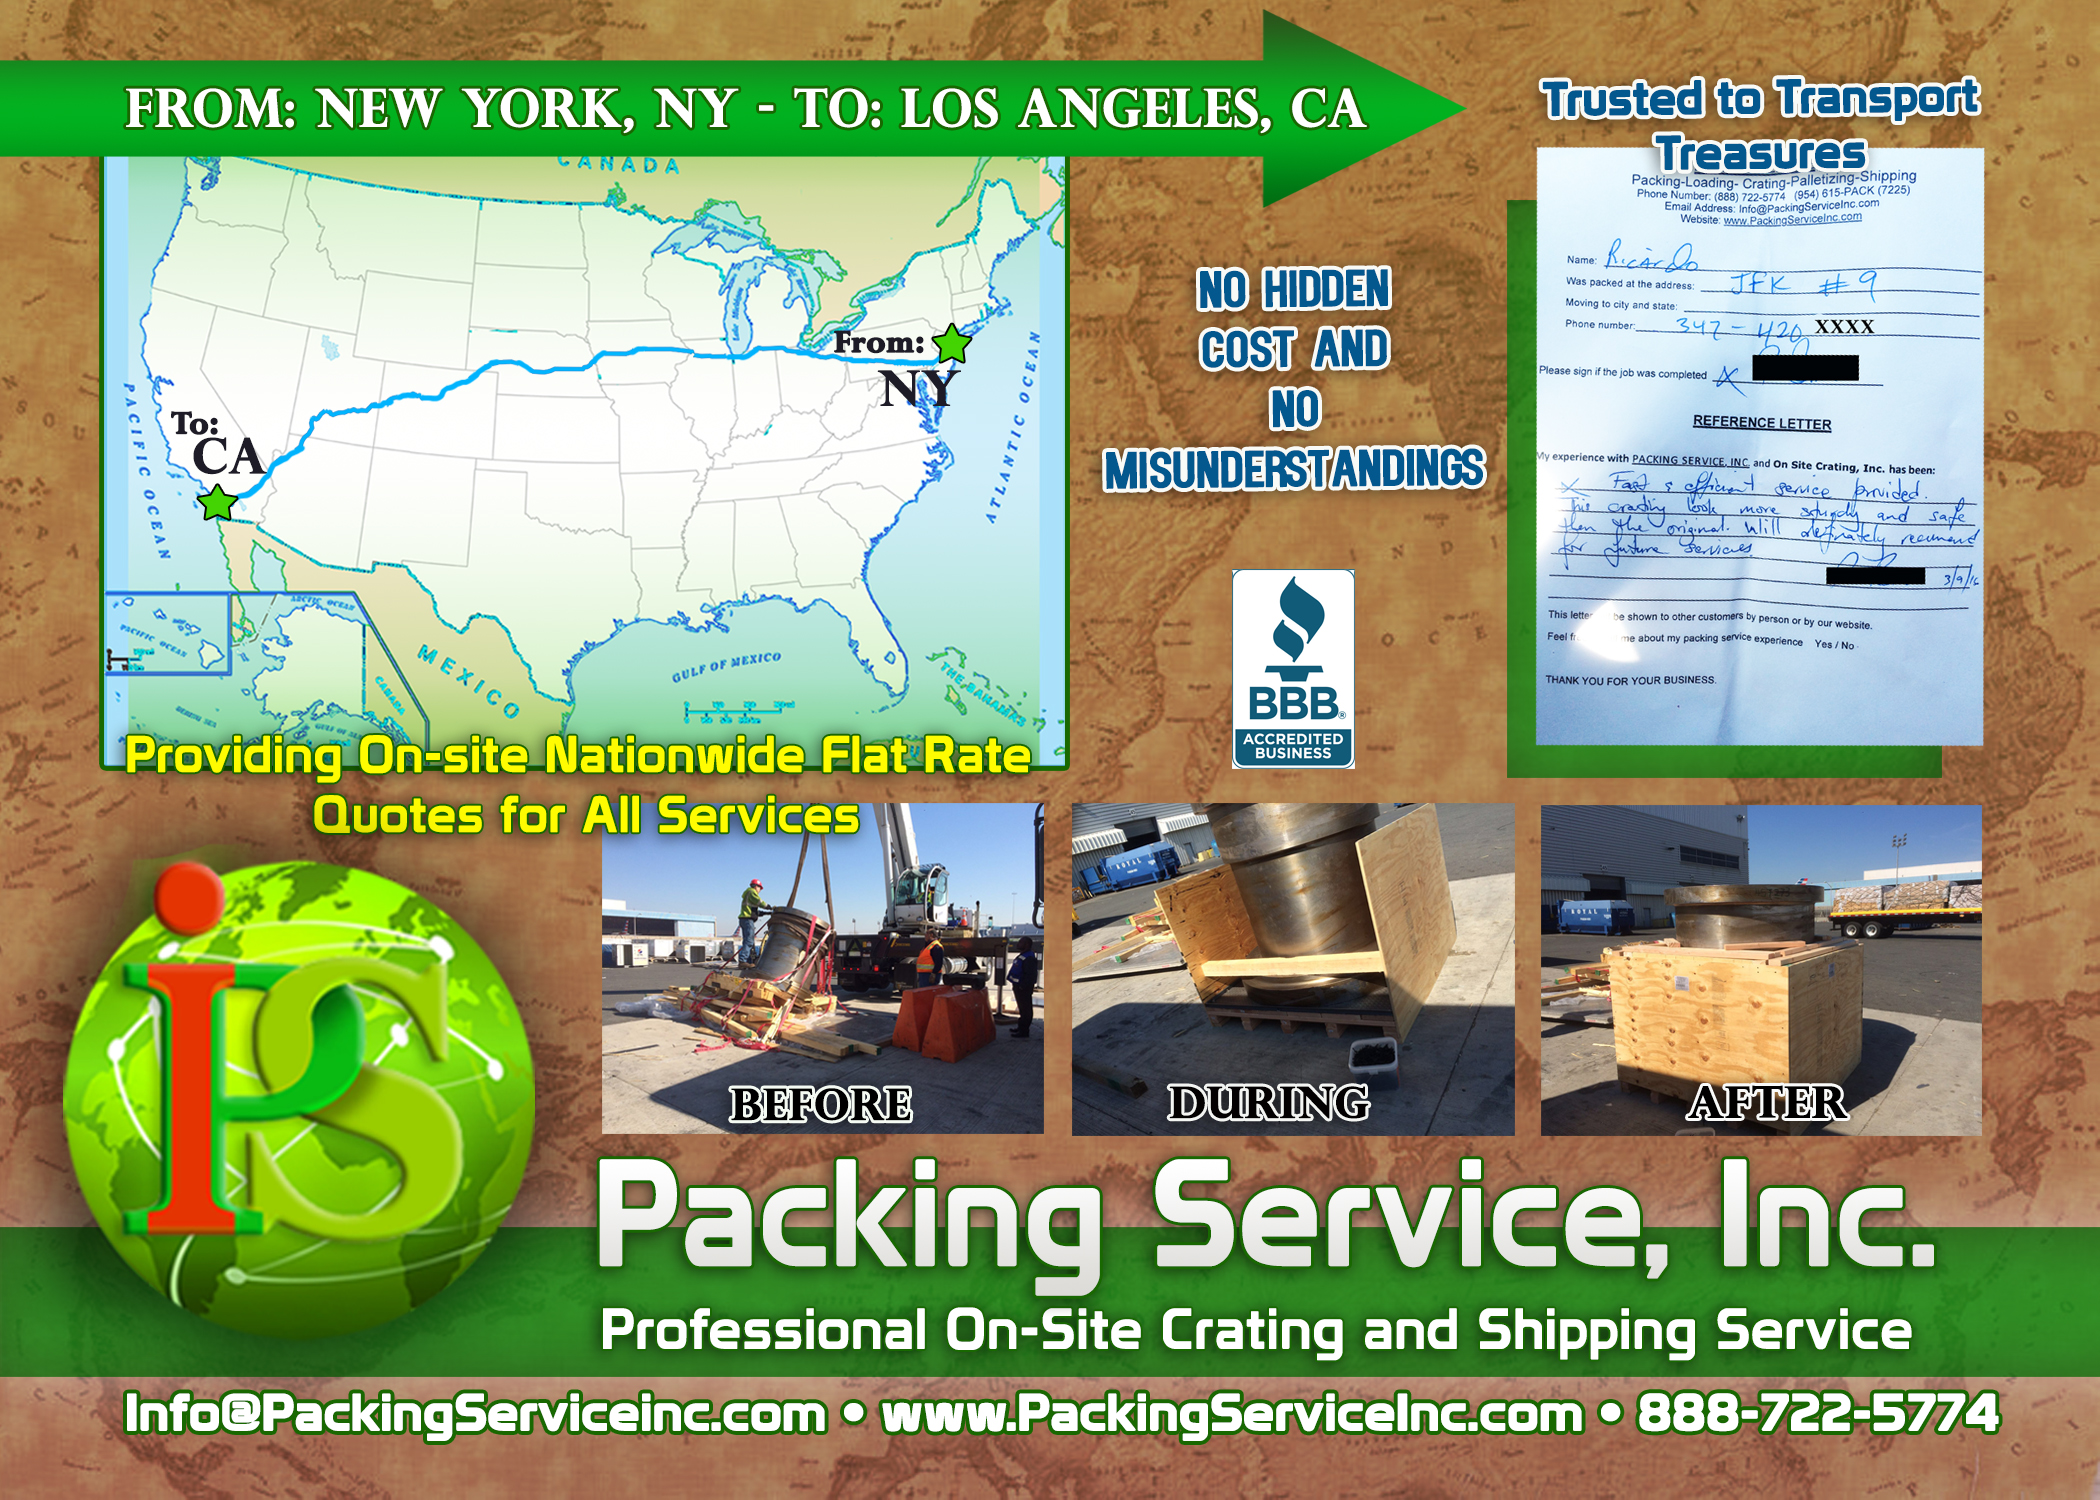 Crating and Shipping from JFK airport NY to Los Angeles, CA with Packing Service, Inc. 3